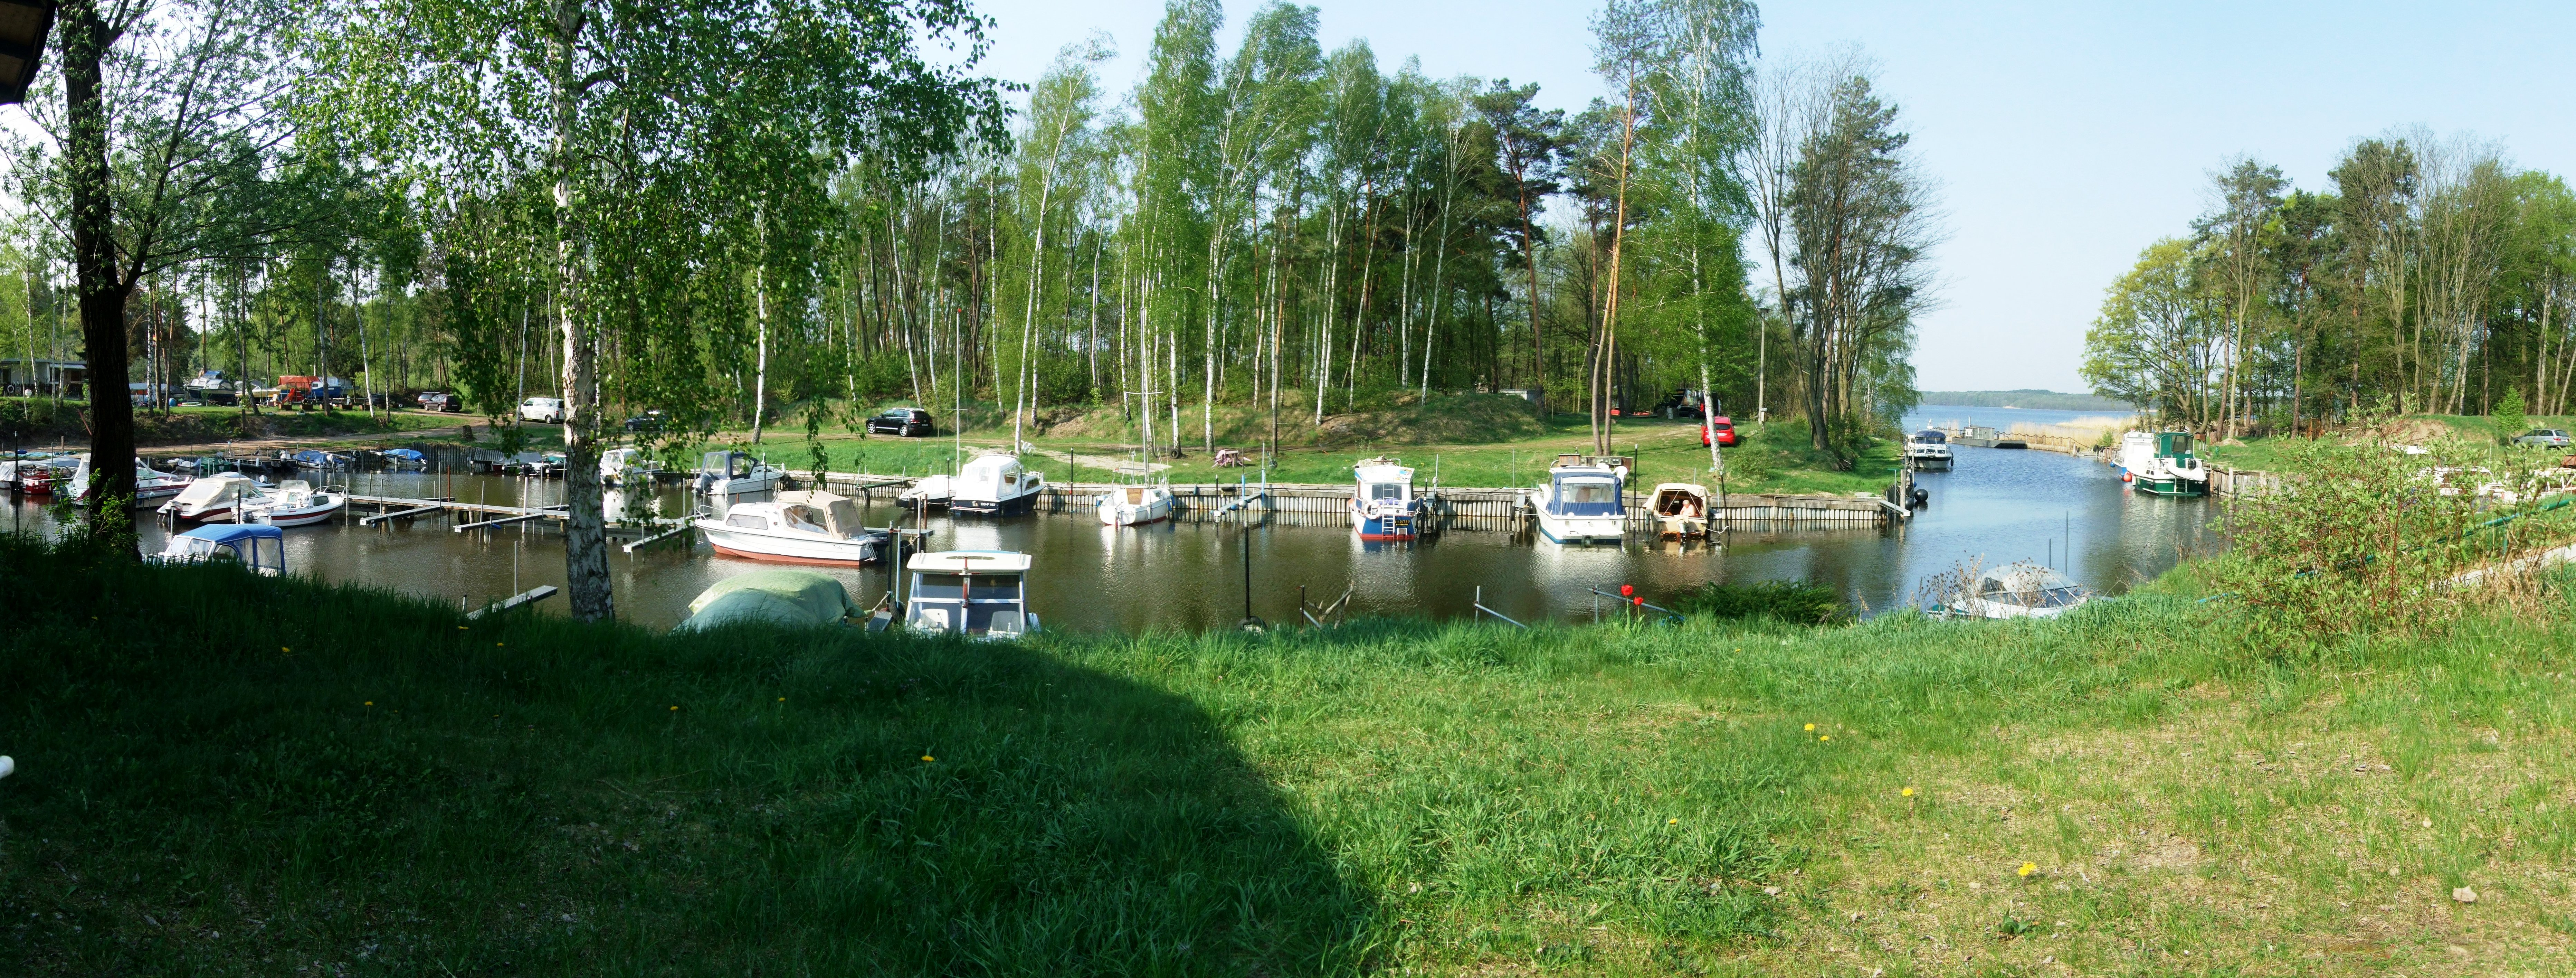 Bootshaus in Wolzig